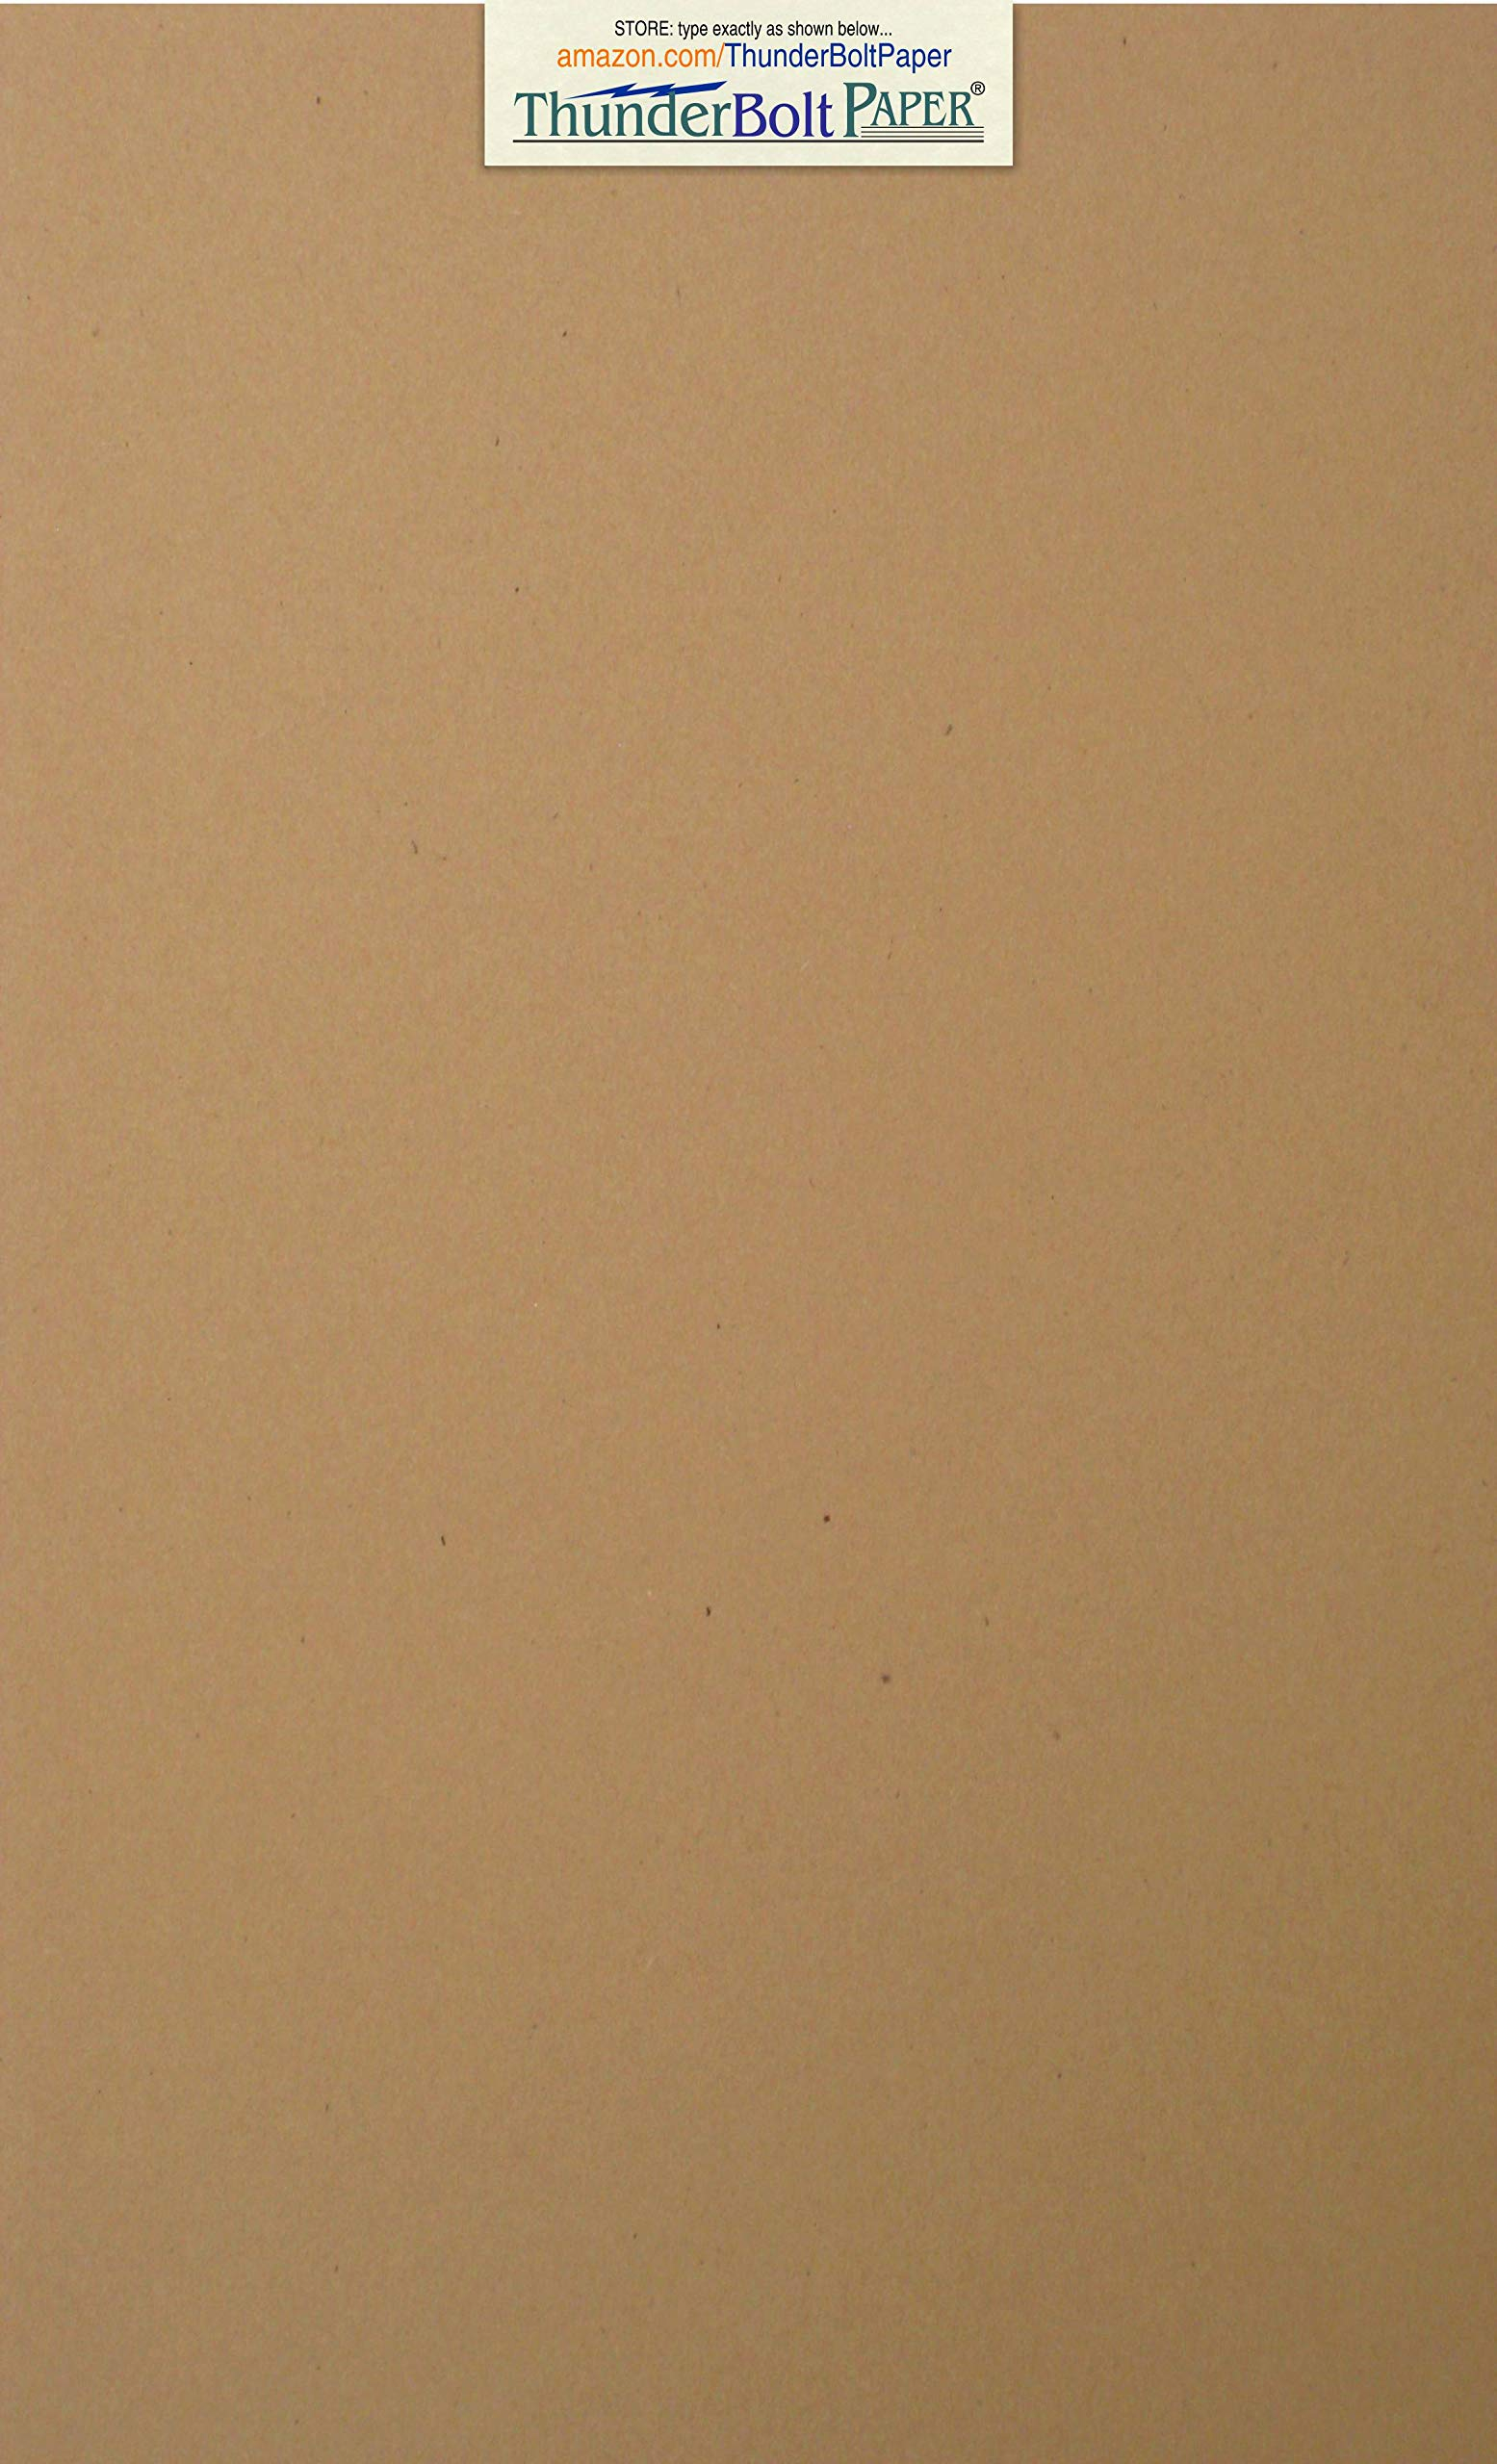 100 Brown Kraft Fiber 80# Cover Paper Sheets - 8.5'' X 14'' (8.5X14 Inches) Legal|Menu Size - Rich Earthy Color with Natural Fibers - 80lb/pound Cardstock - Smooth Finish by ThunderBolt Paper